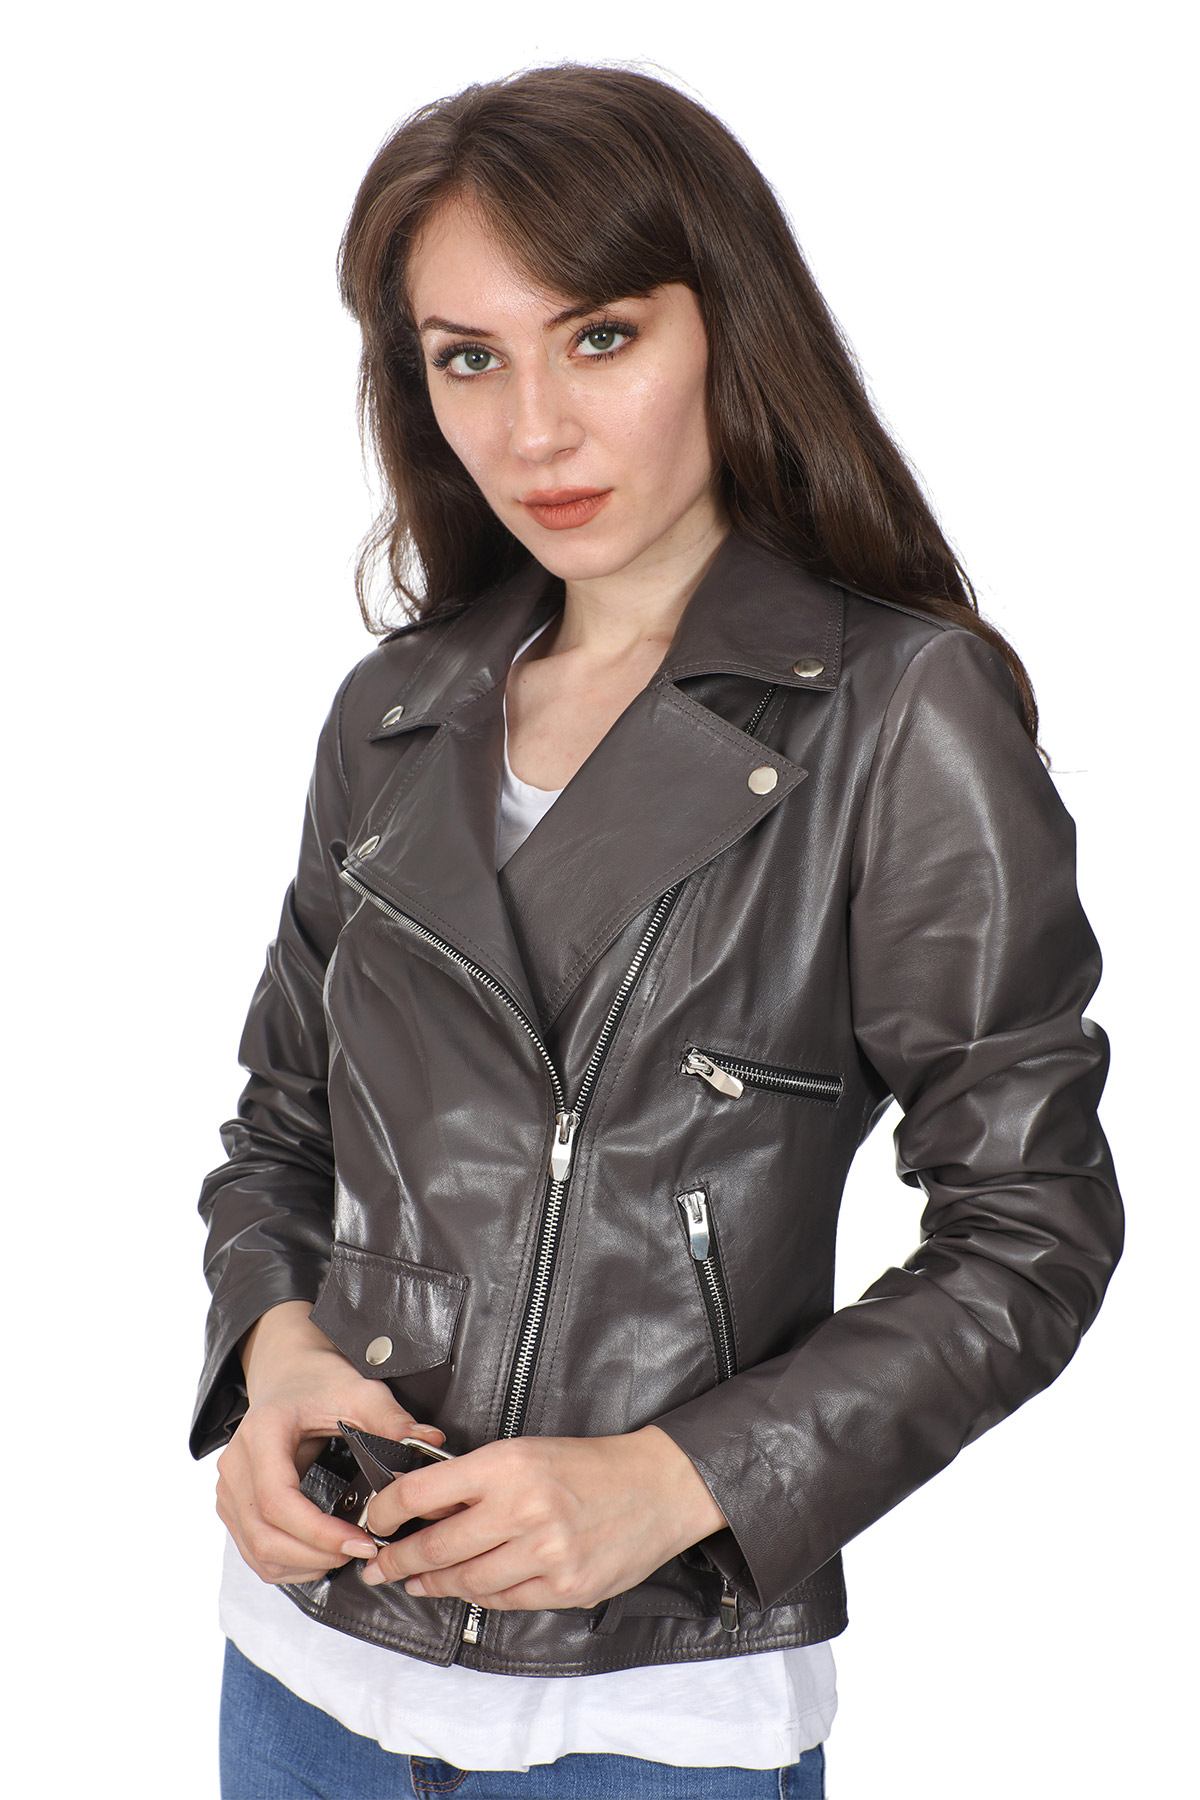 Made To Measure Leather Jackets